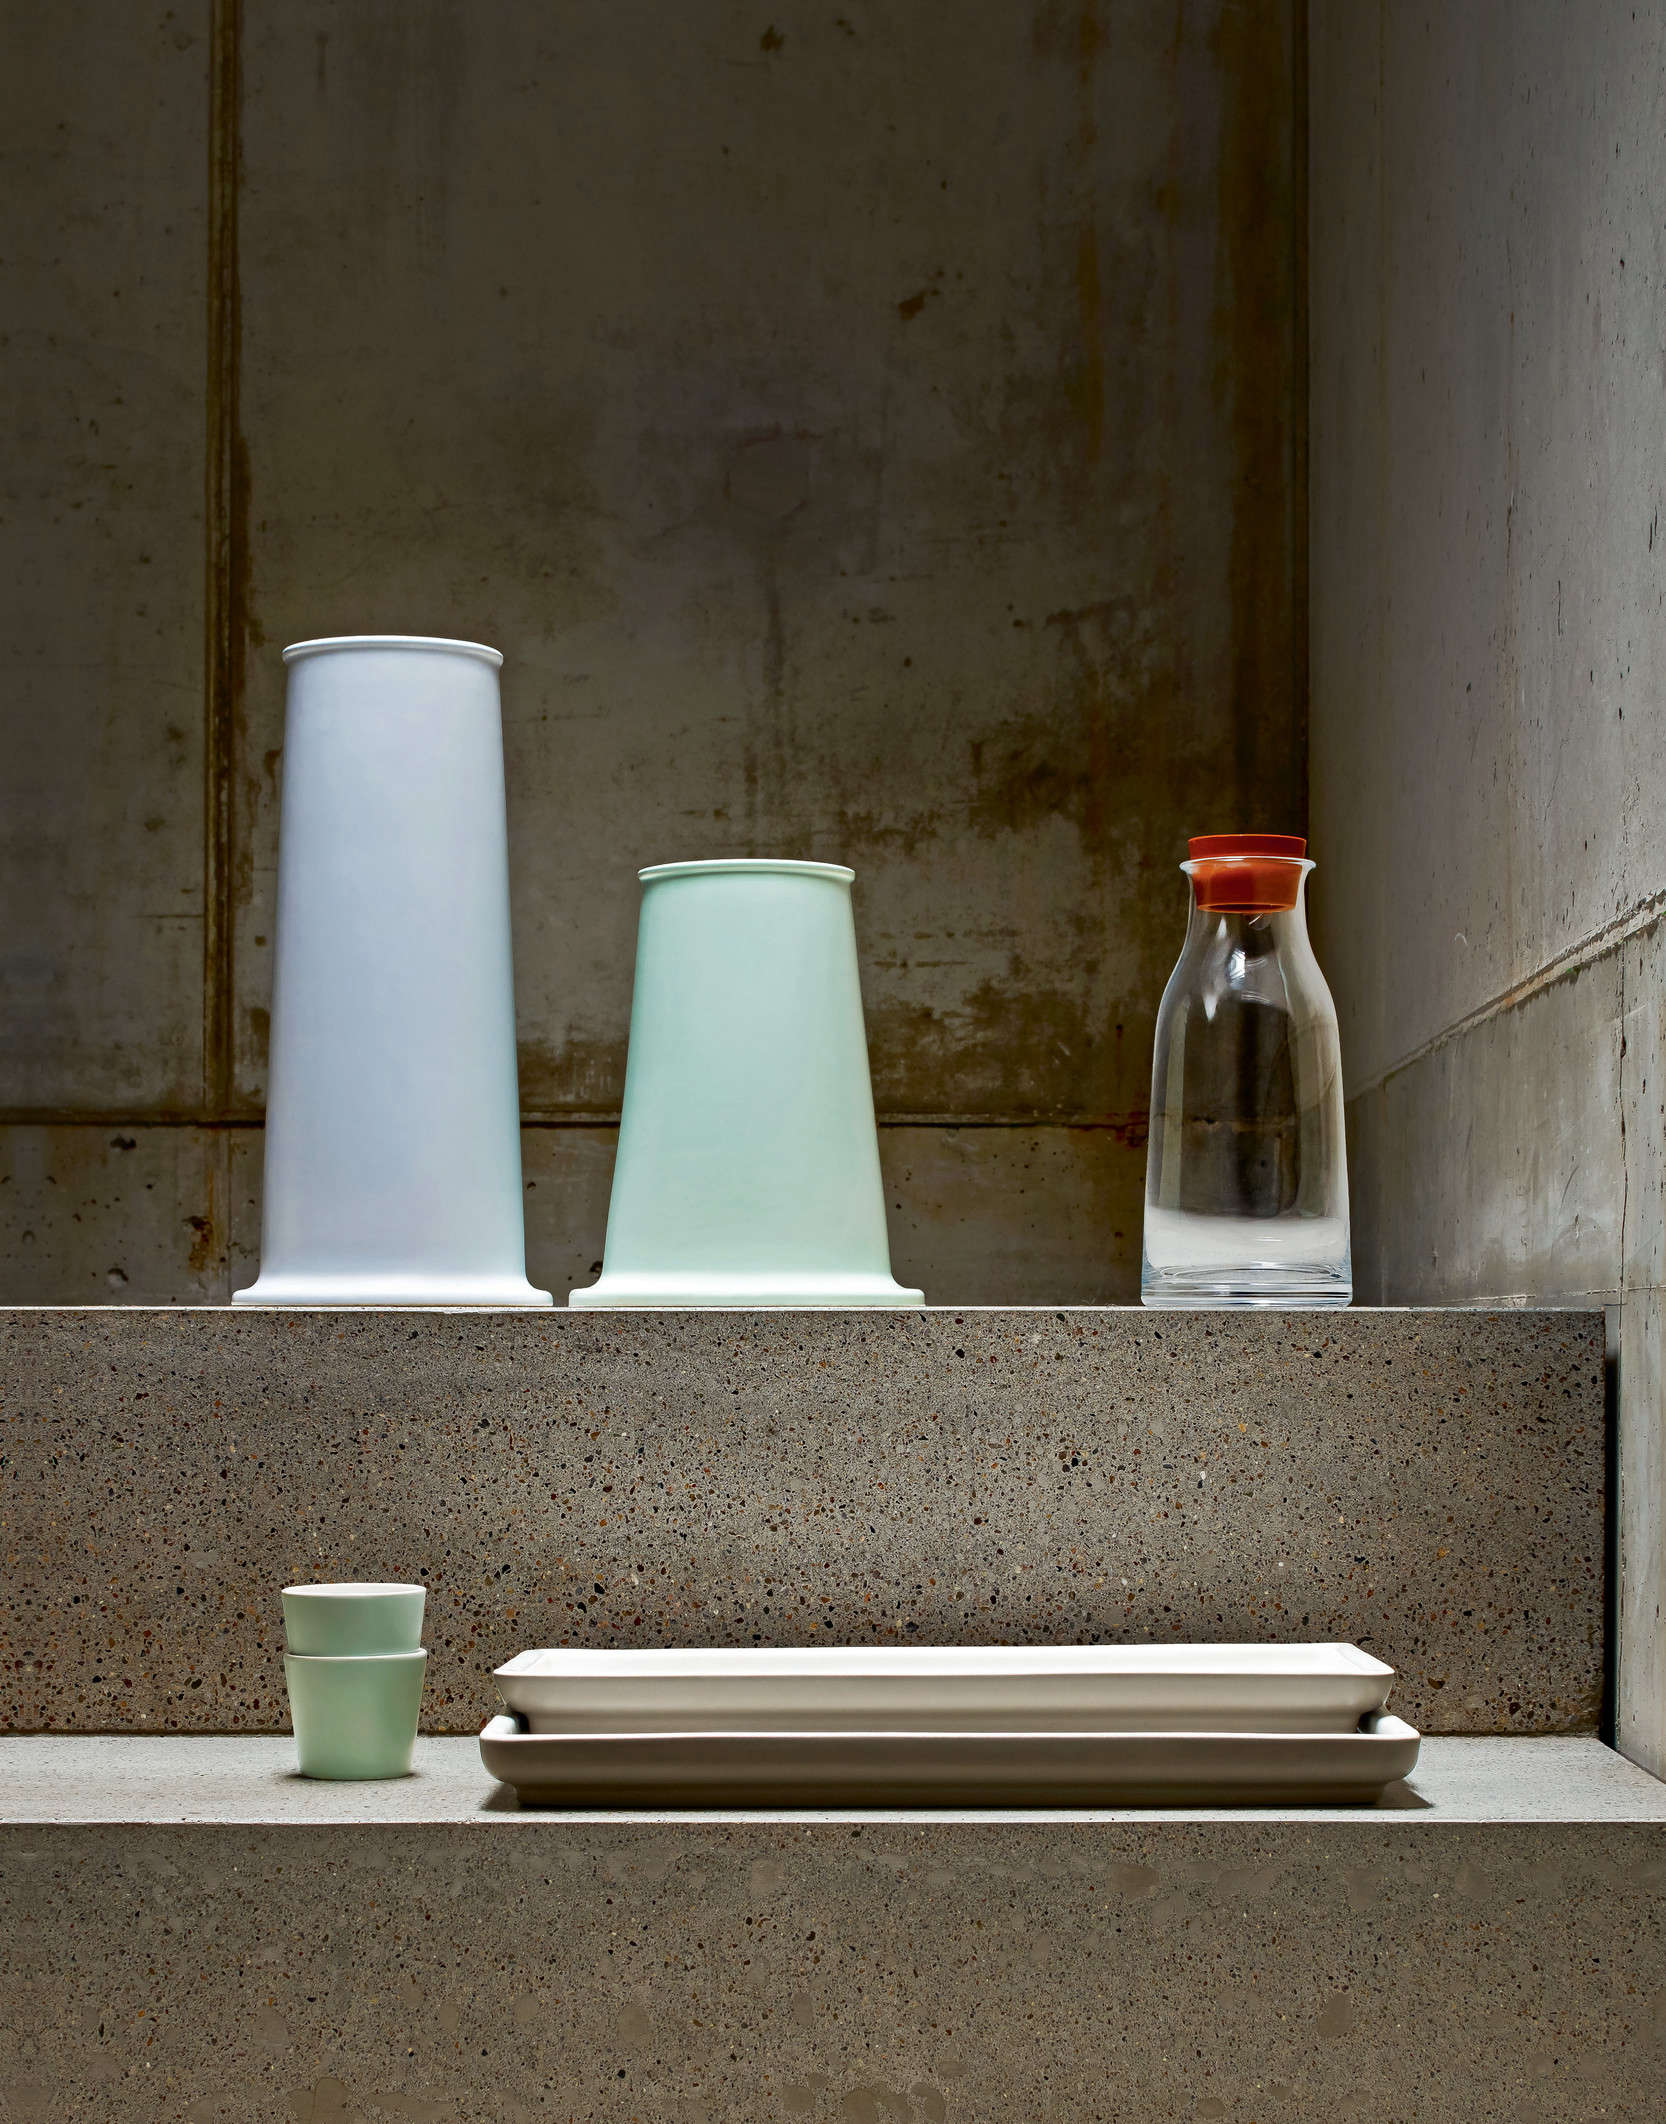 chipperfield tonale for alessi | remodelista 11